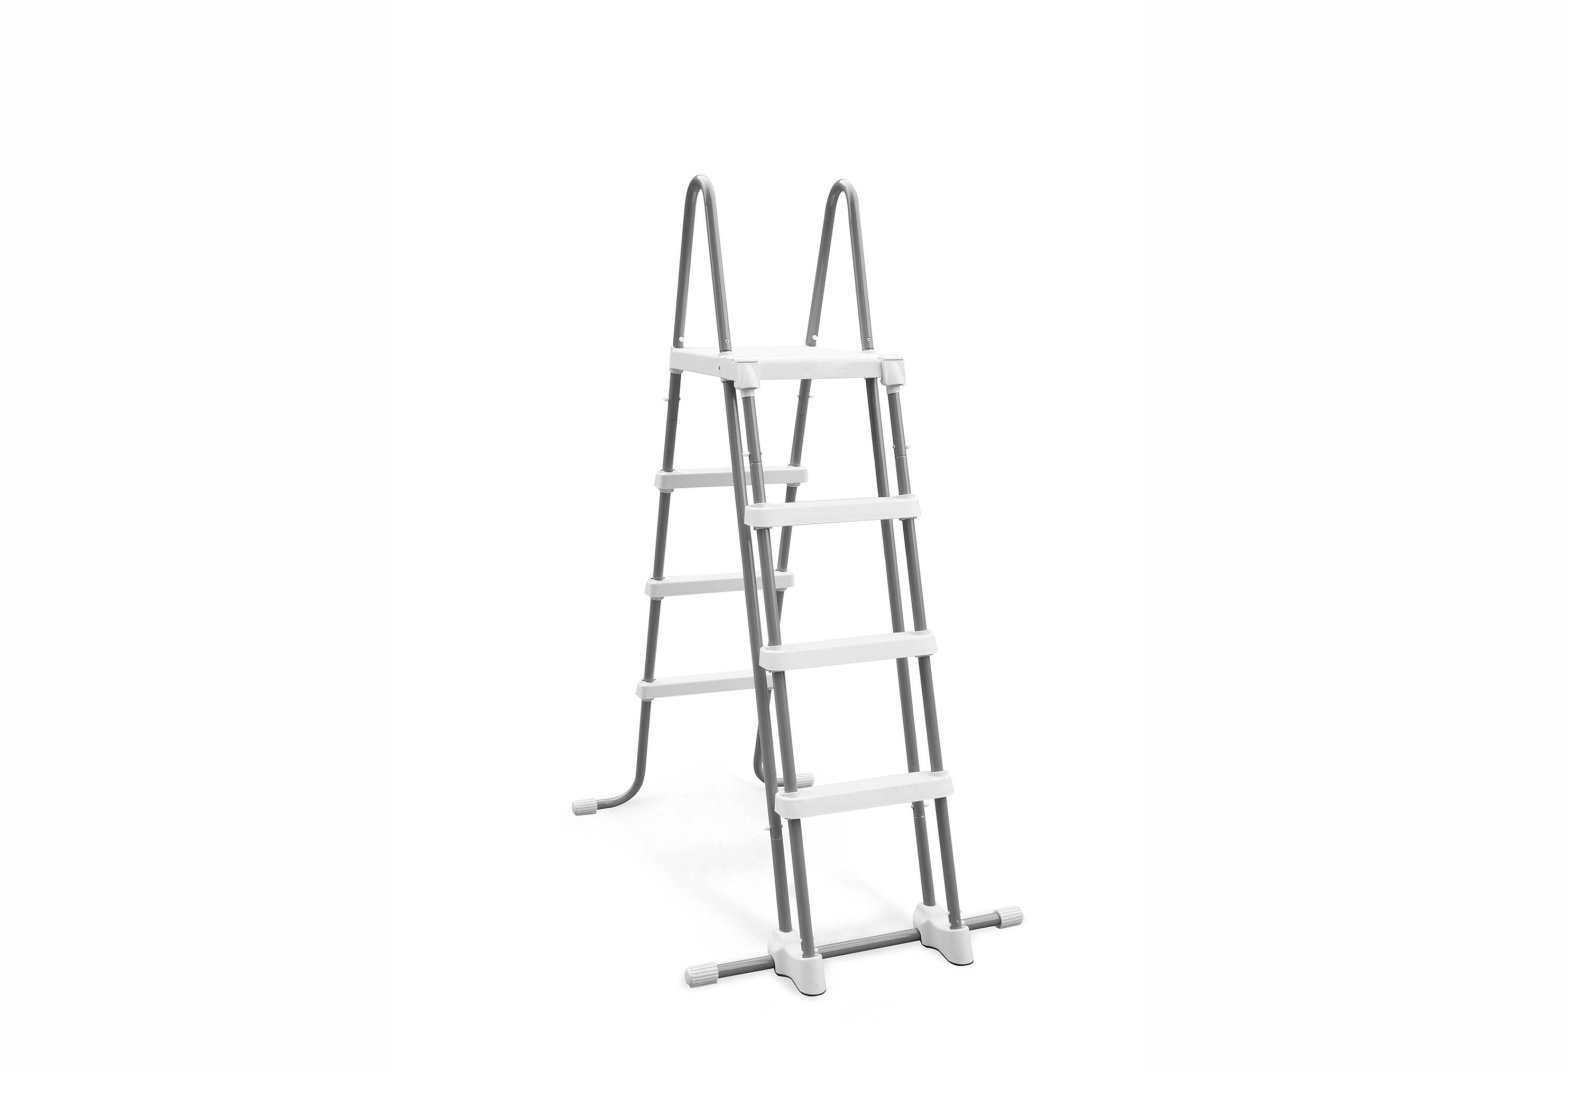 Intex Deluxe Pool Ladder with Removable Steps for 48-Inch Wall Height Above Ground Pools by Intex